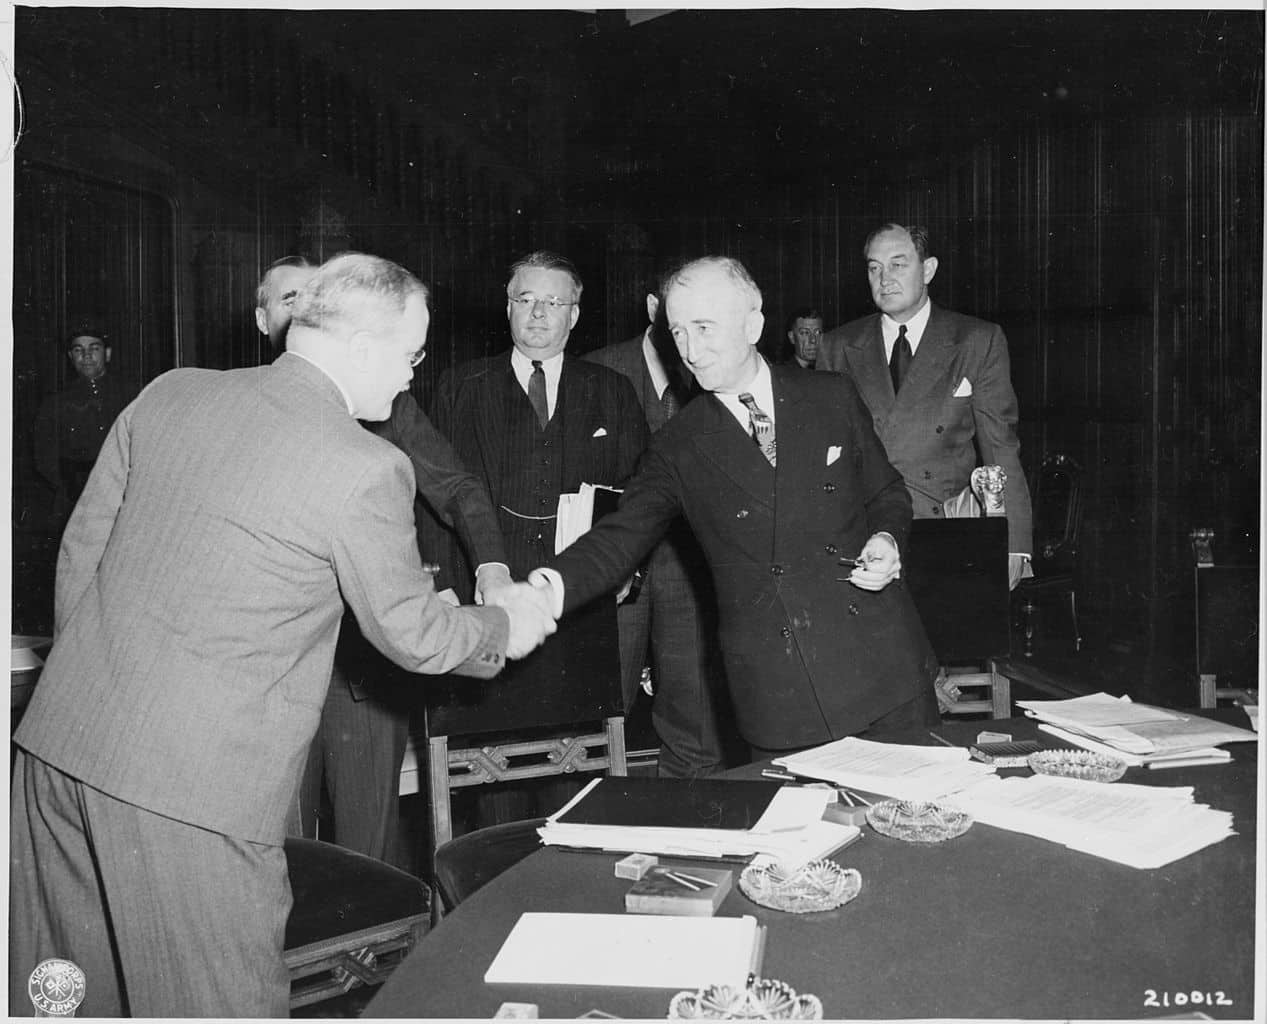 The Potsdam Conference - July 27th 1945 - Soviet foreign minister Vyacheslav Molotov, left, shakes hands with Secretary of State James Byrnes before the commencement of a session of the Potsdam Conference